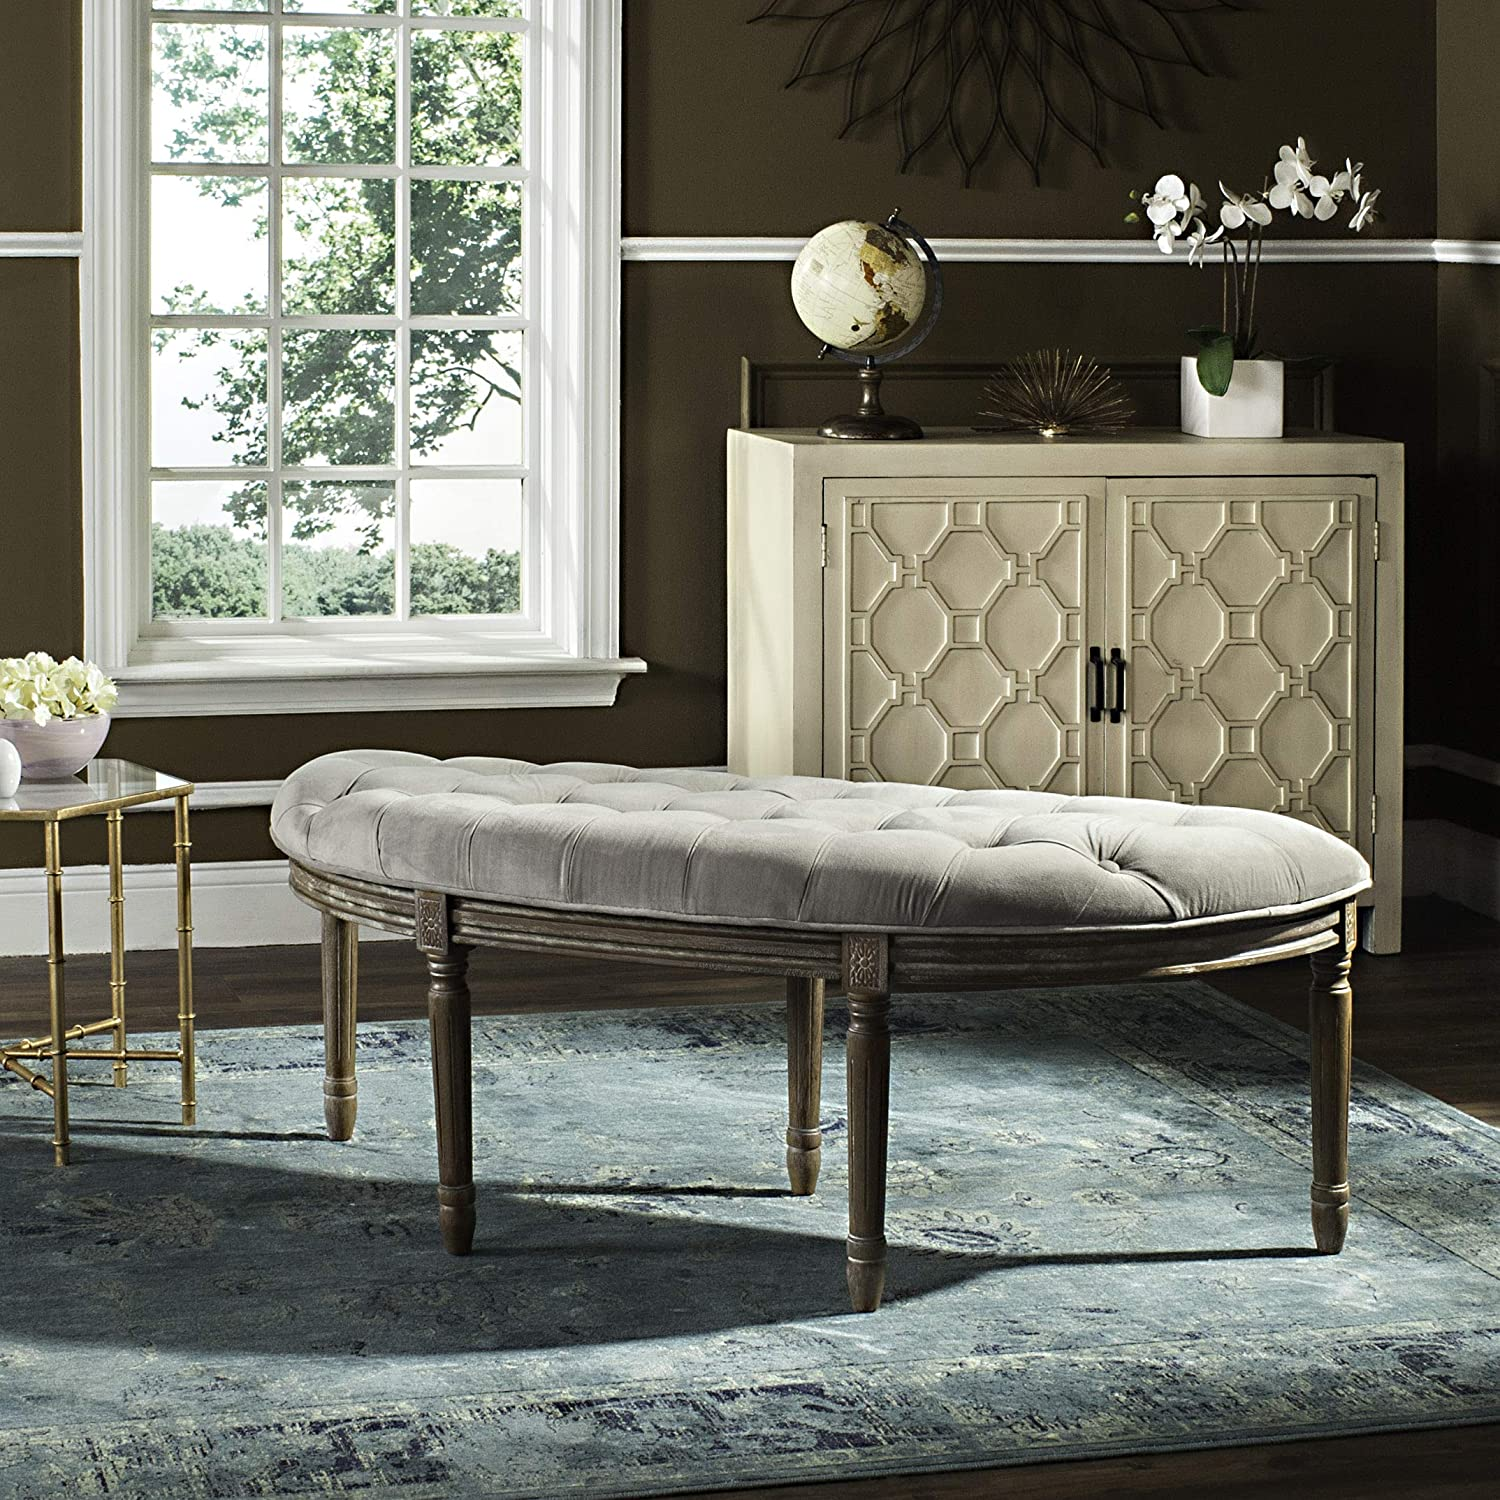 Safavieh Home Collection Abilene Tufted Rustic Semi-Circle Grey and Rustic Oak Bench